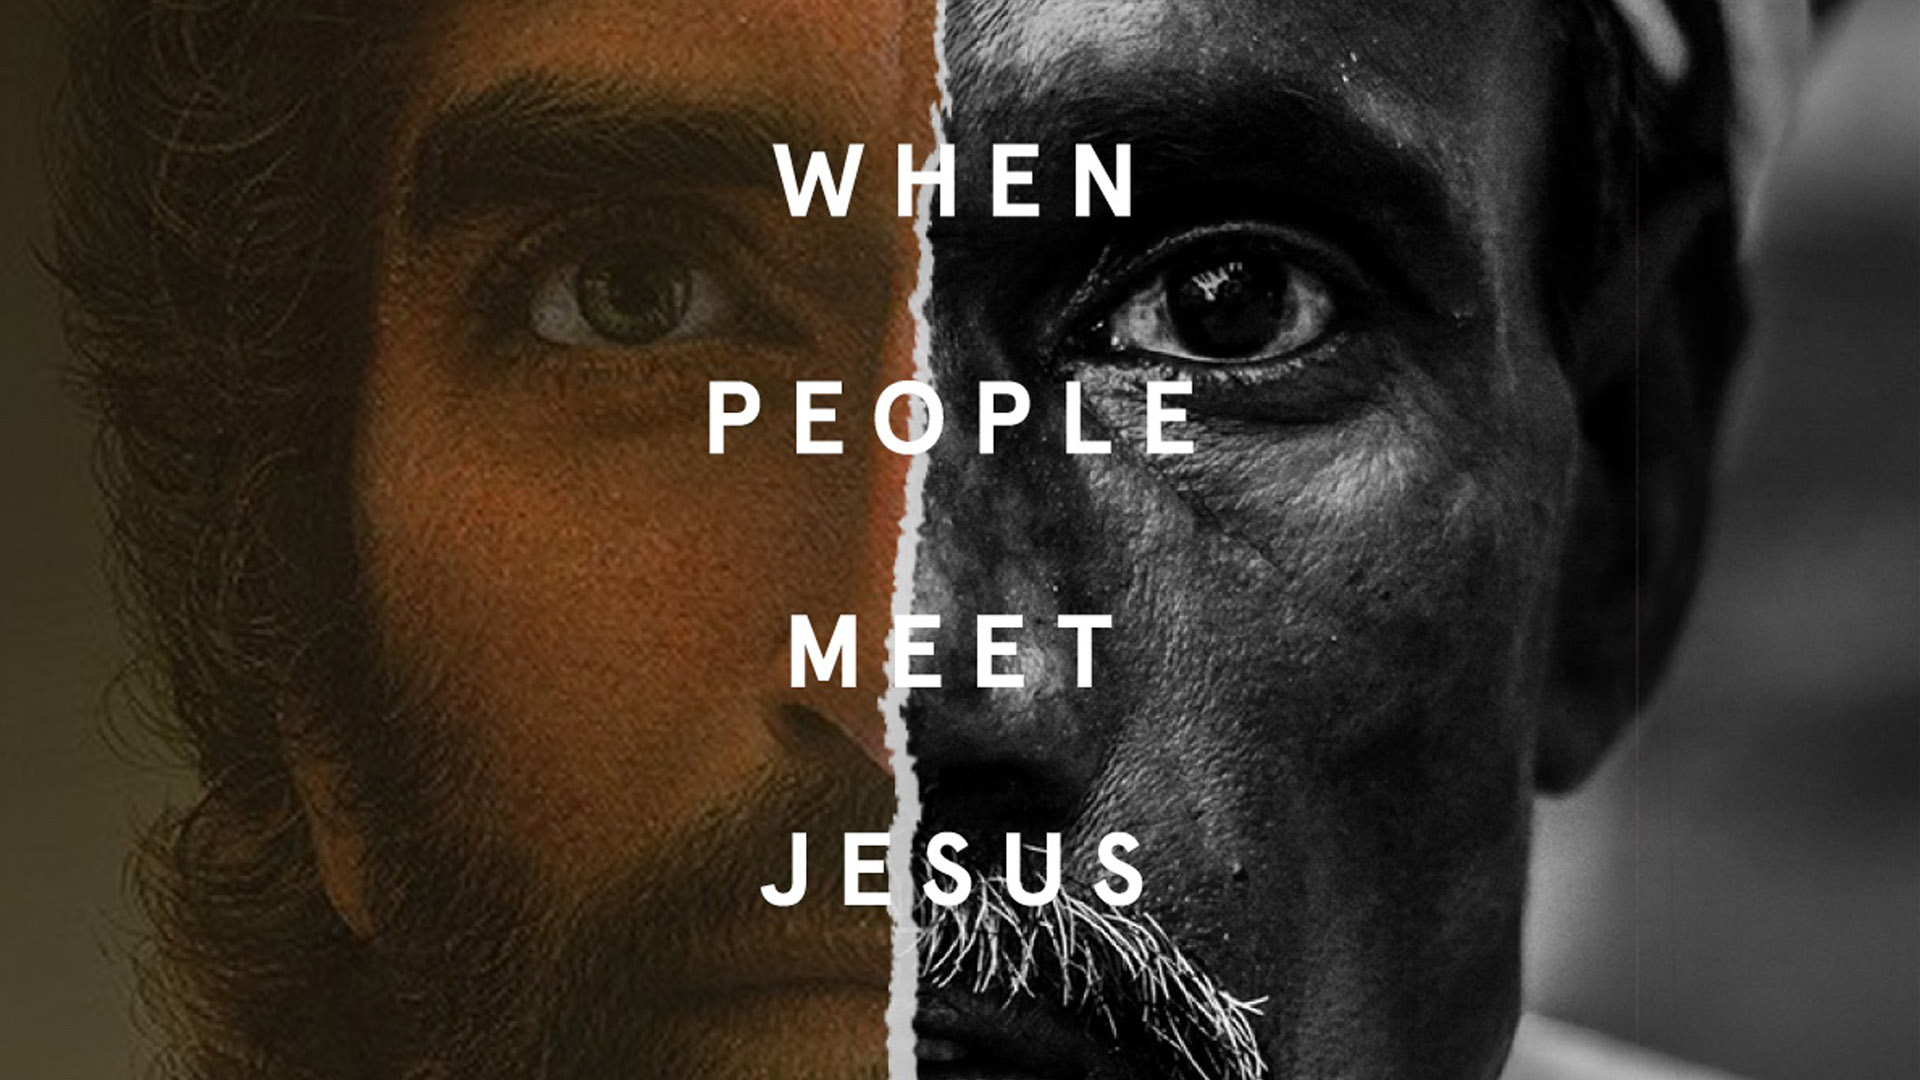 When People Meet Jesus - Personal encounters with ordinary people that changes lives in extraordinary ways